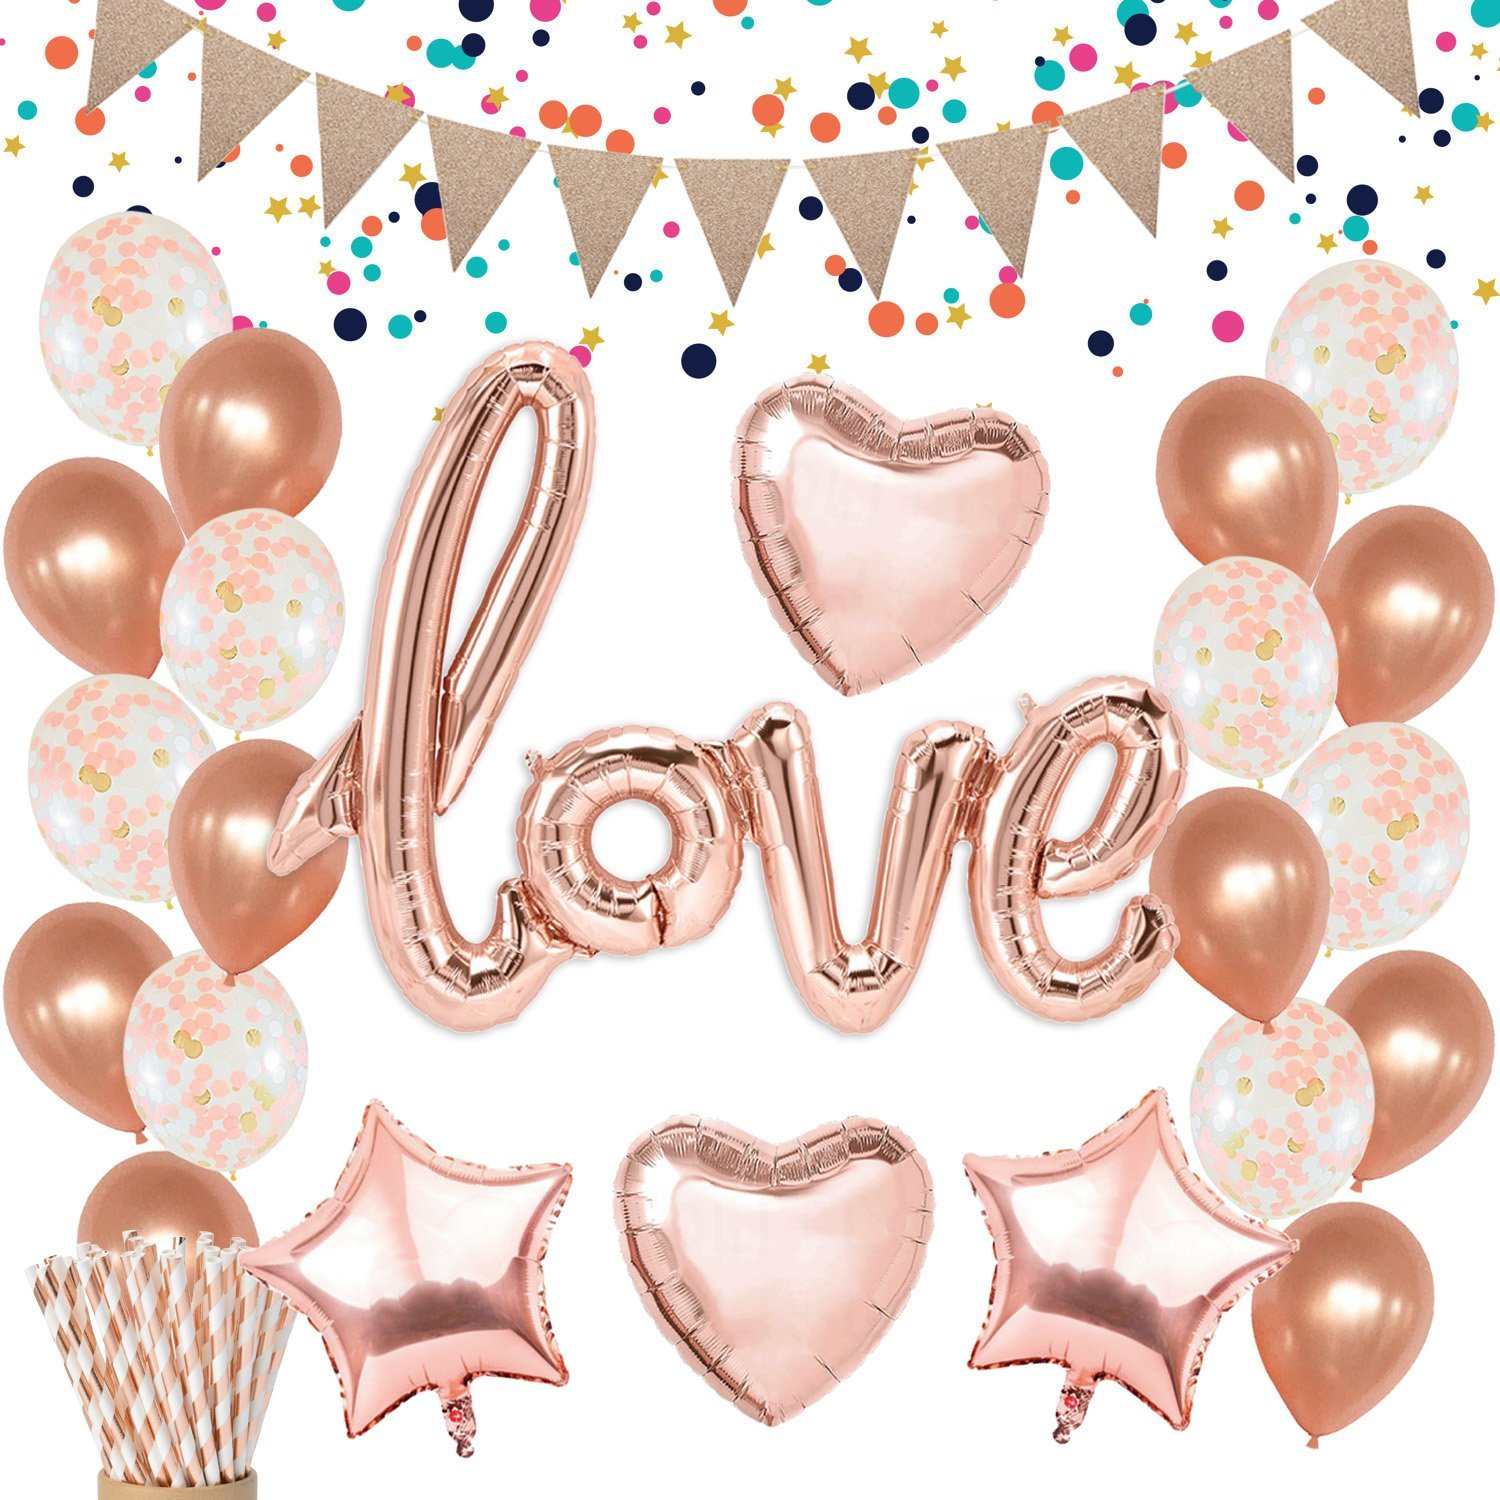 7c72786e4600 Rose Gold Love Balloons Decorations - Confetti Balloons Glitter Pennant  Banner Heart Foil Balloons for Mothers